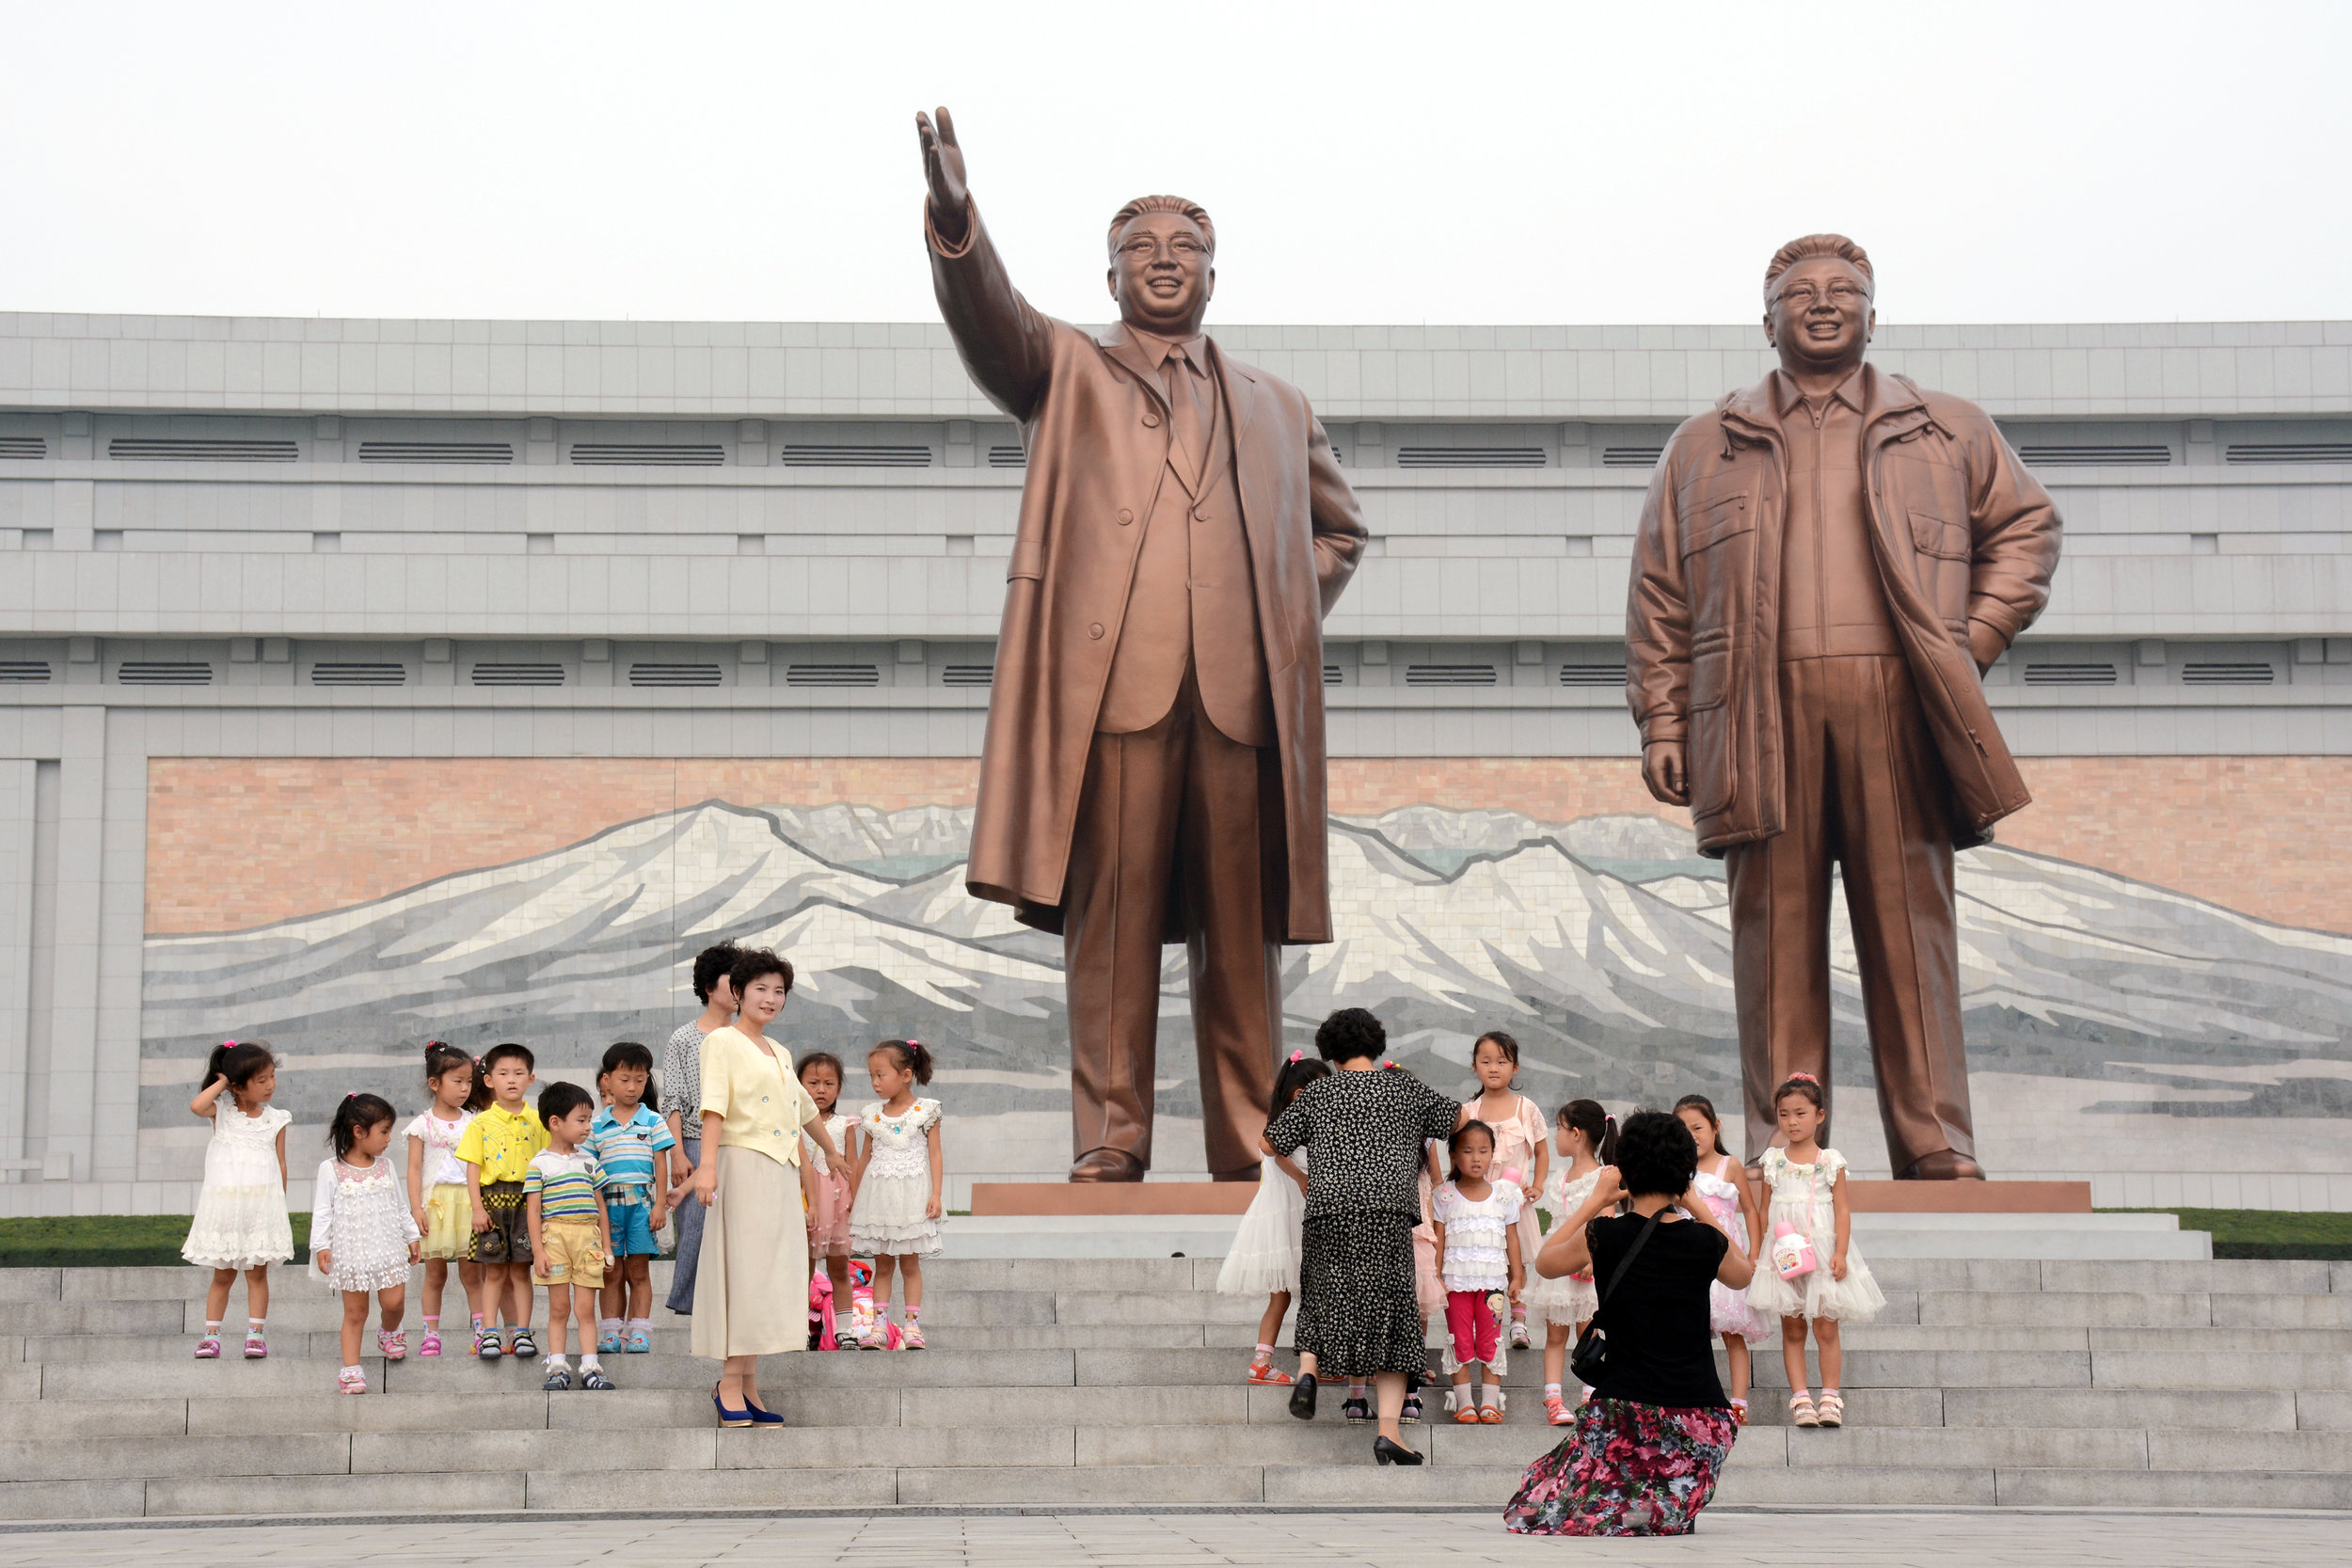 Kindergarten students pose with their teachers at the Mansudae Grand Monuments in Pyongyang.